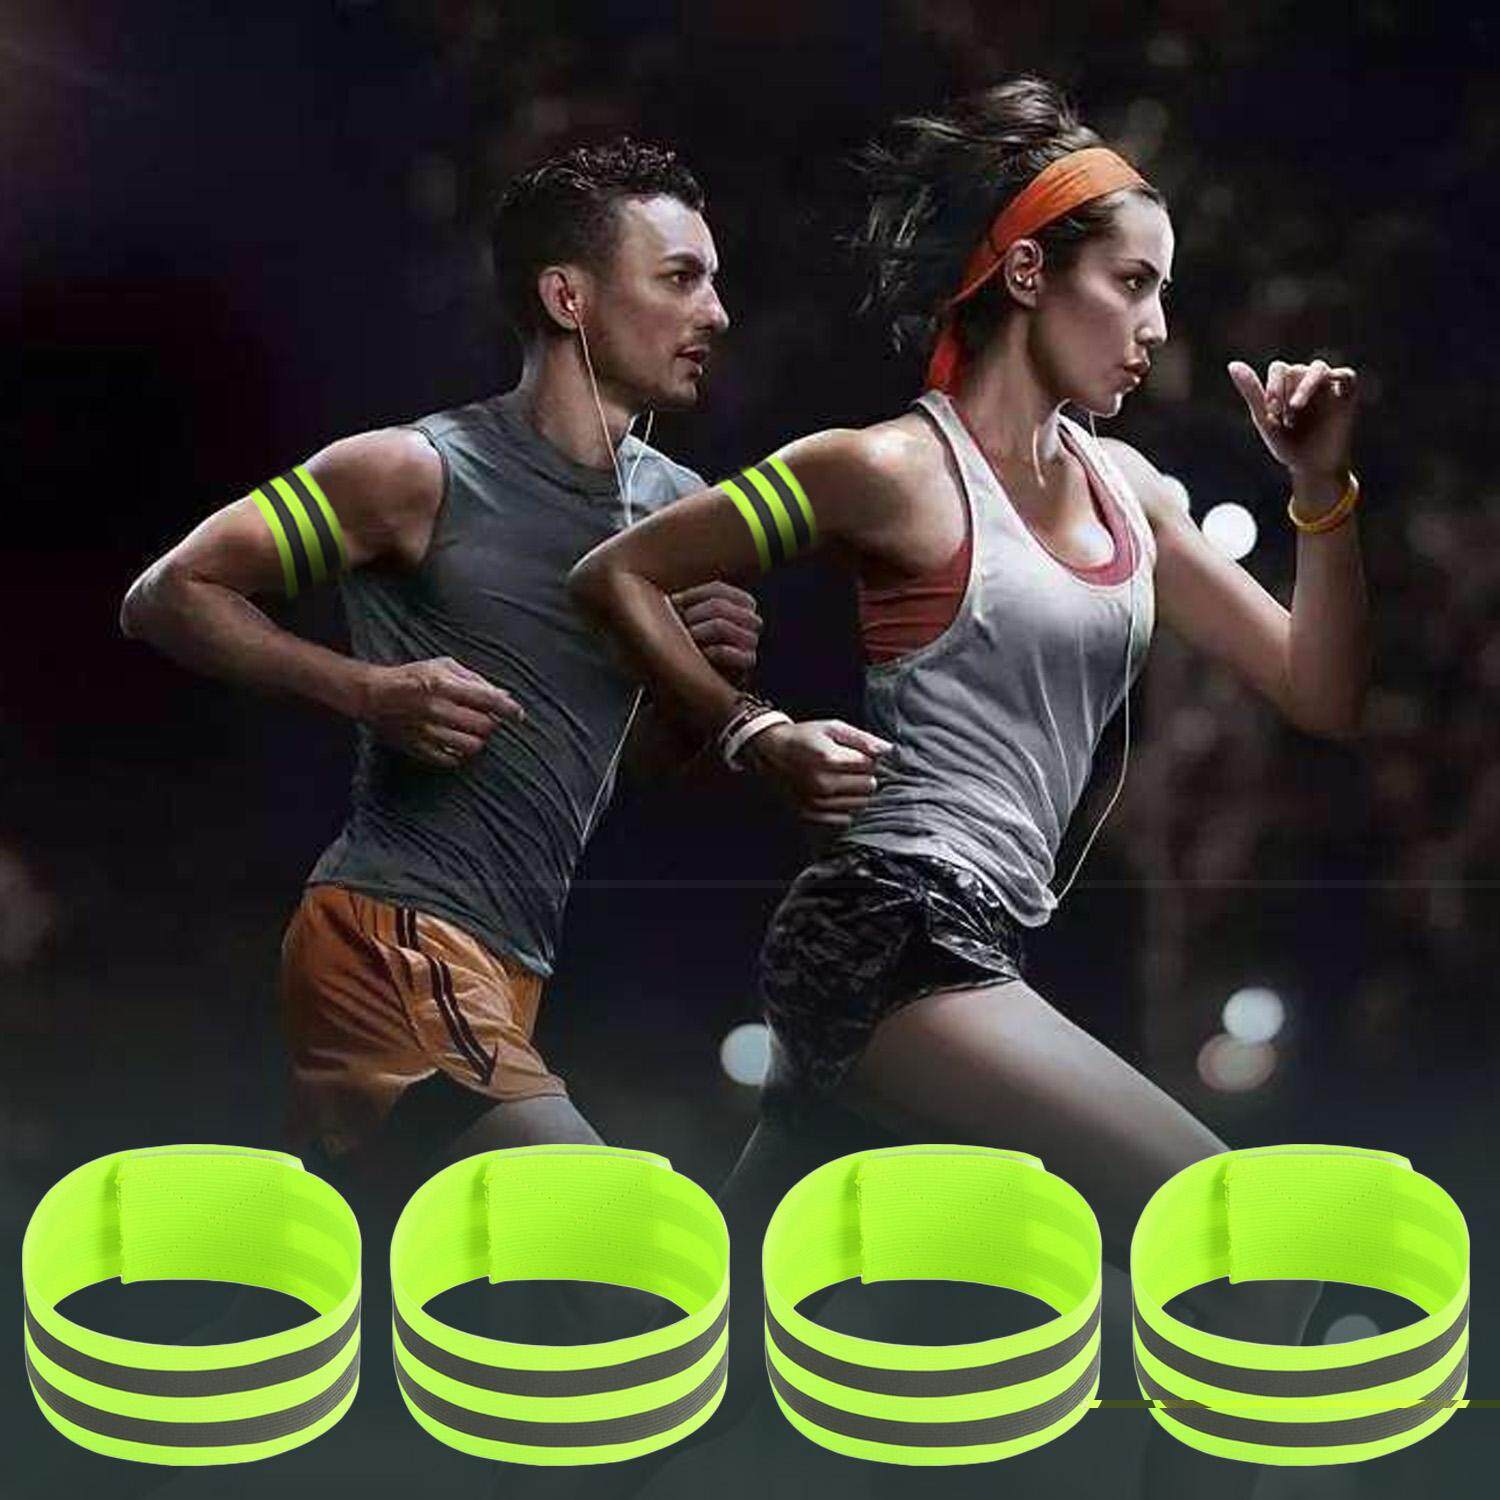 4pcs Adjustable High Visibility Reflective Safety Bands Belt For Wrist Arm Ankle Leg Running Jogging Cycling Walking Wandering Green By Duha.